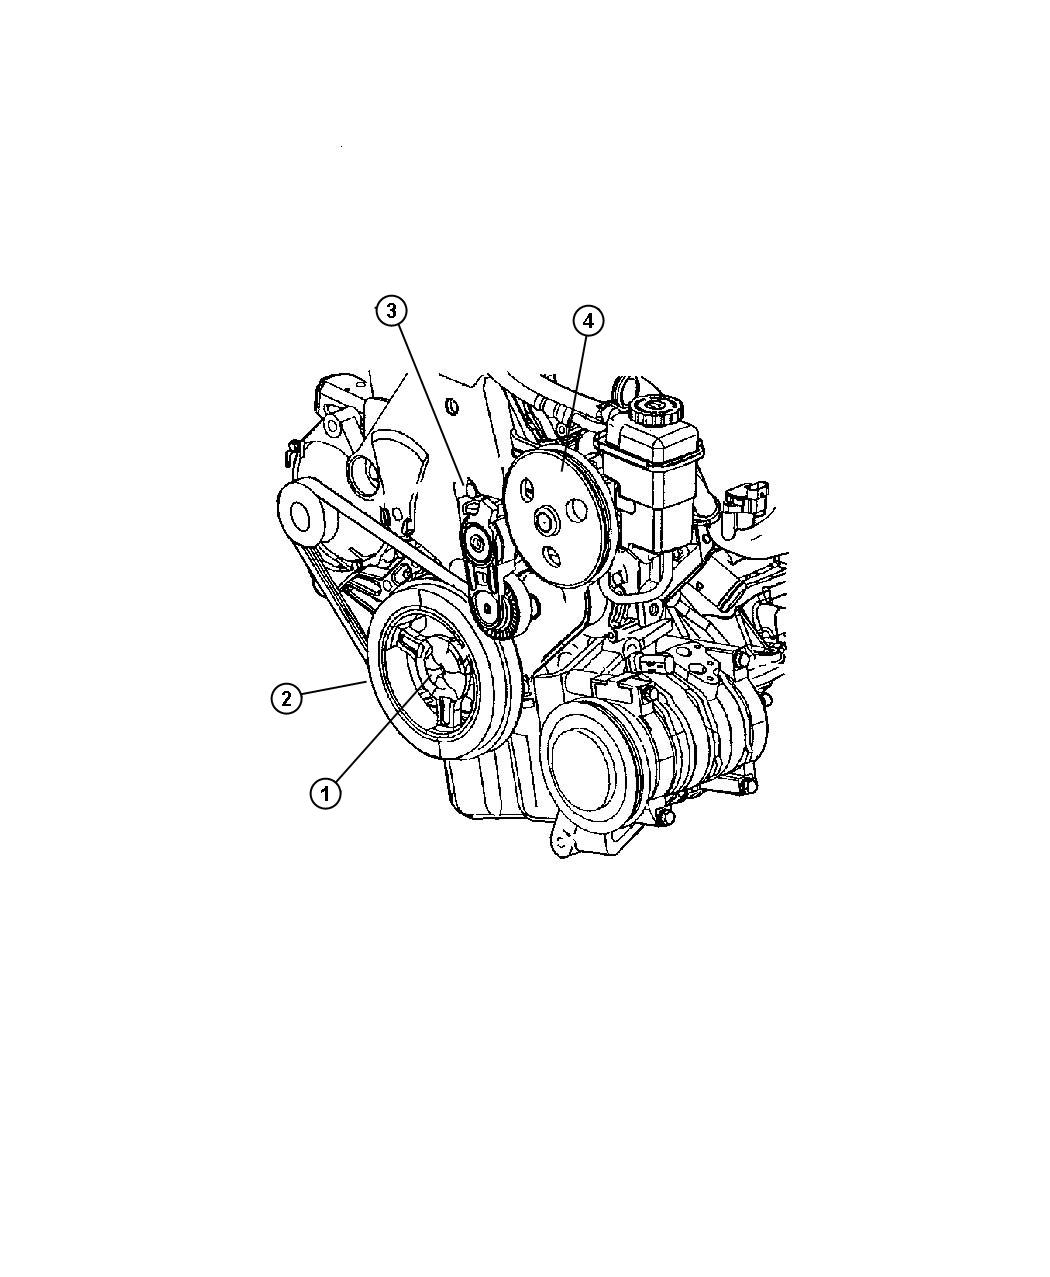 2001 Dodge Neon Used for: TENSIONER AND BRACKET. Engine